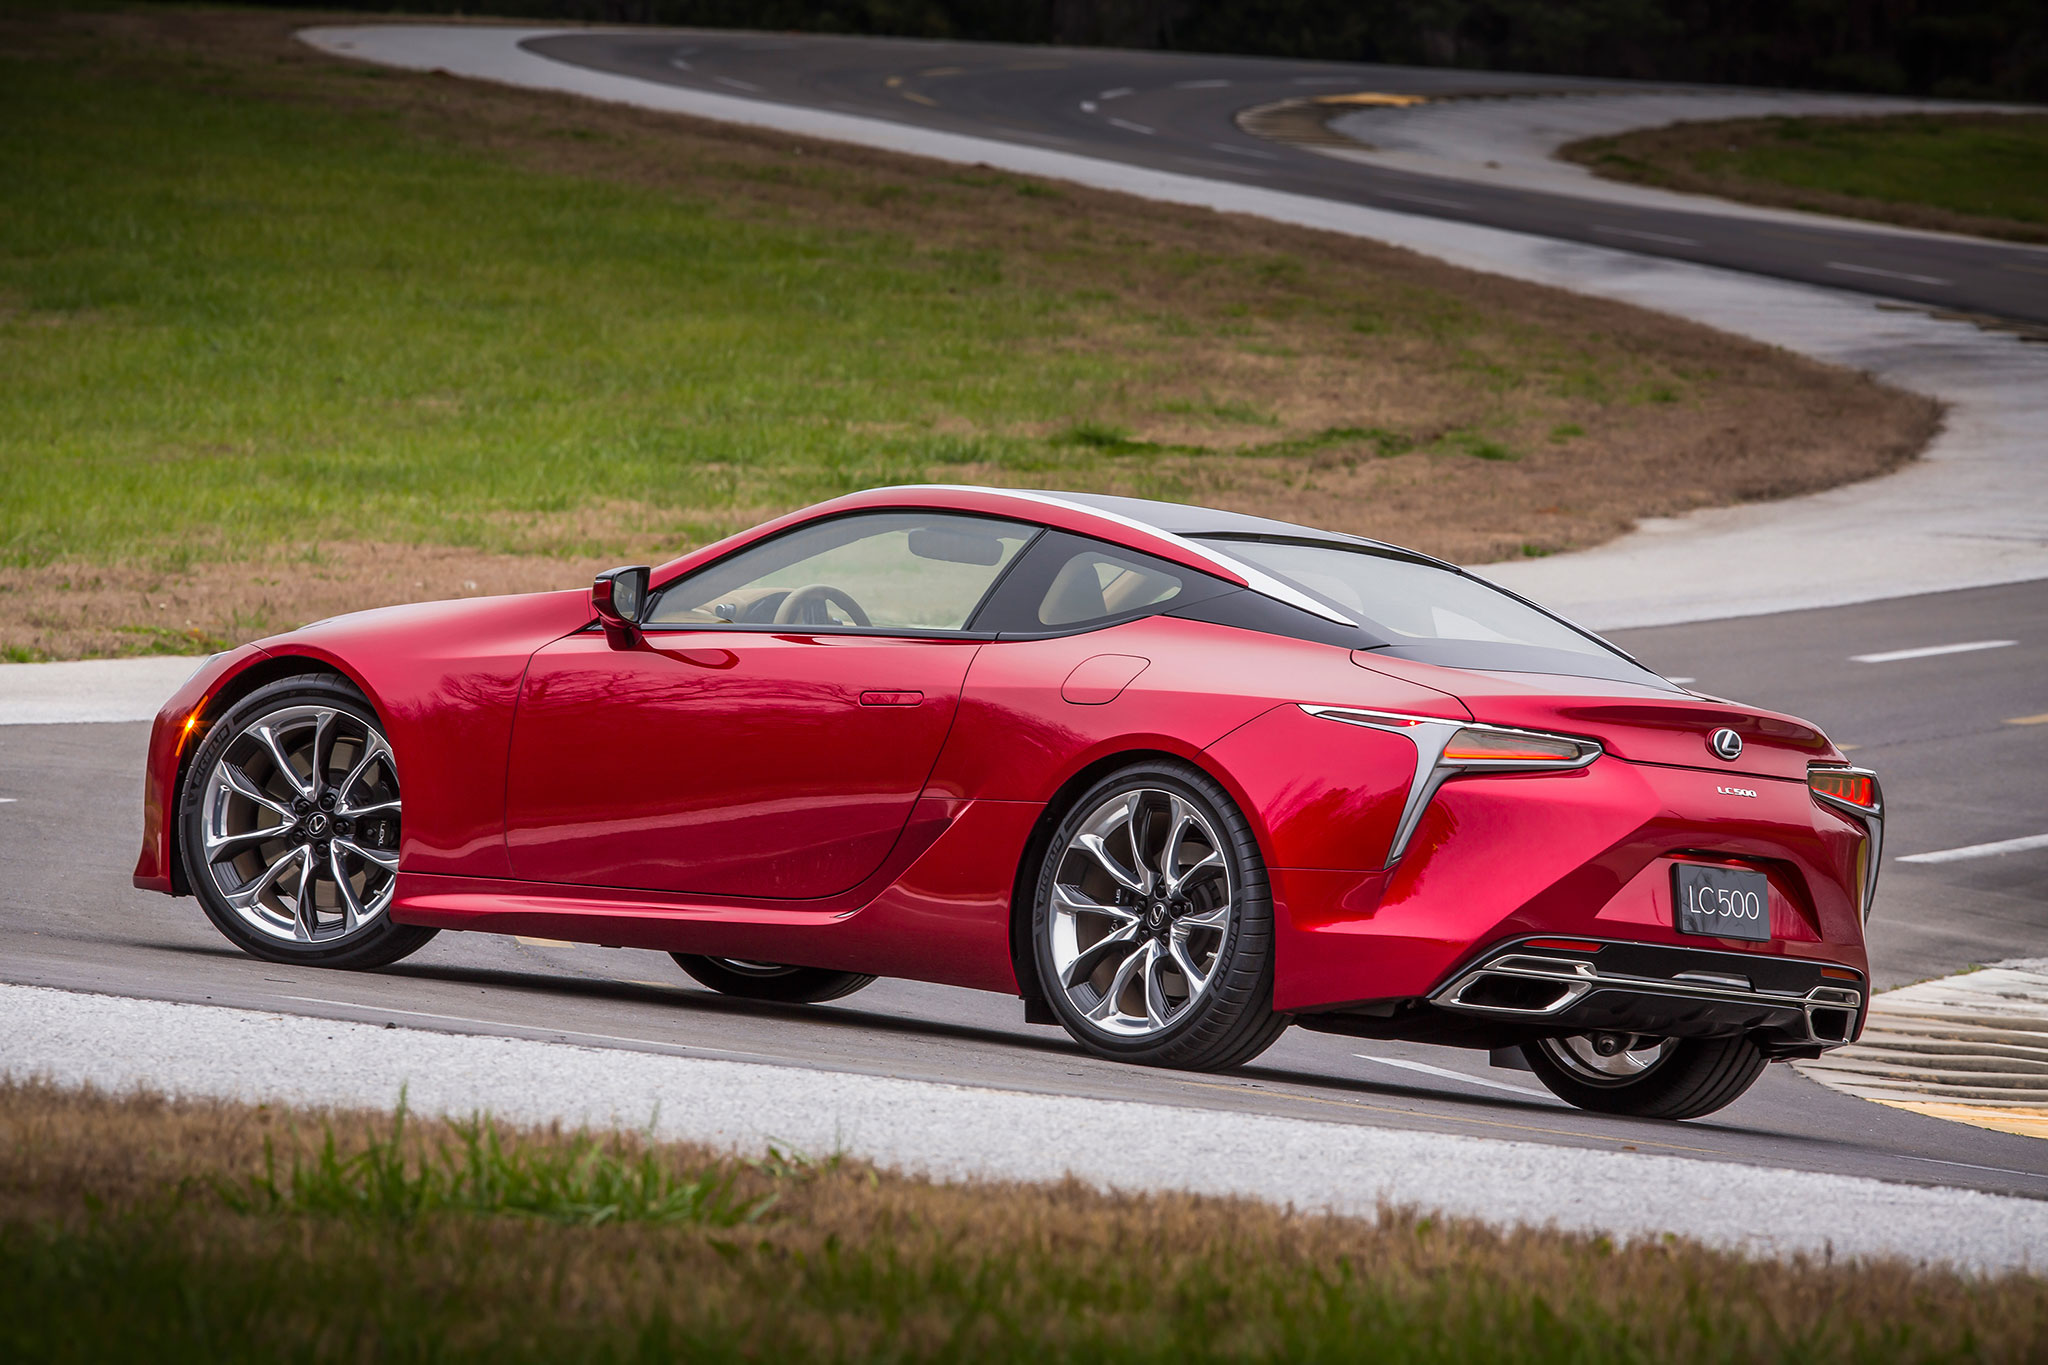 2018 Lexus LC 500 rear three quarter 01